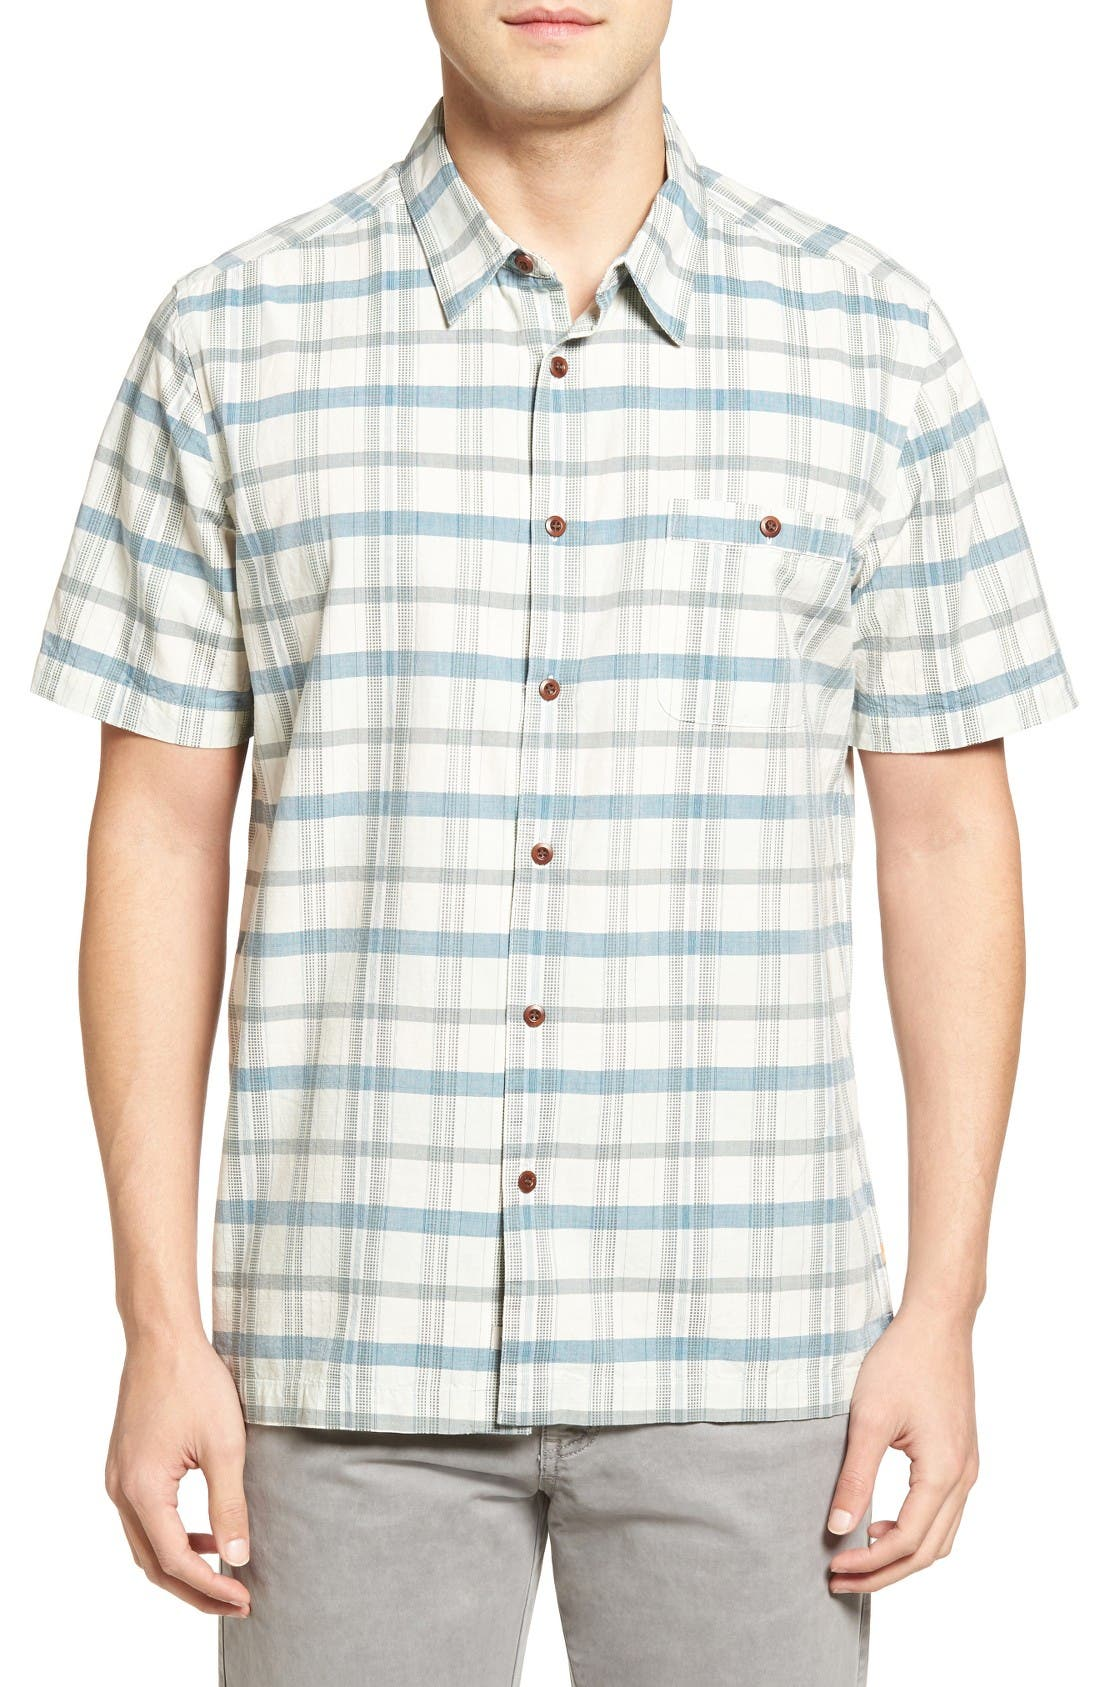 QUIKSILVER WATERMAN COLLECTION 'Idle Time' Regular Fit Plaid